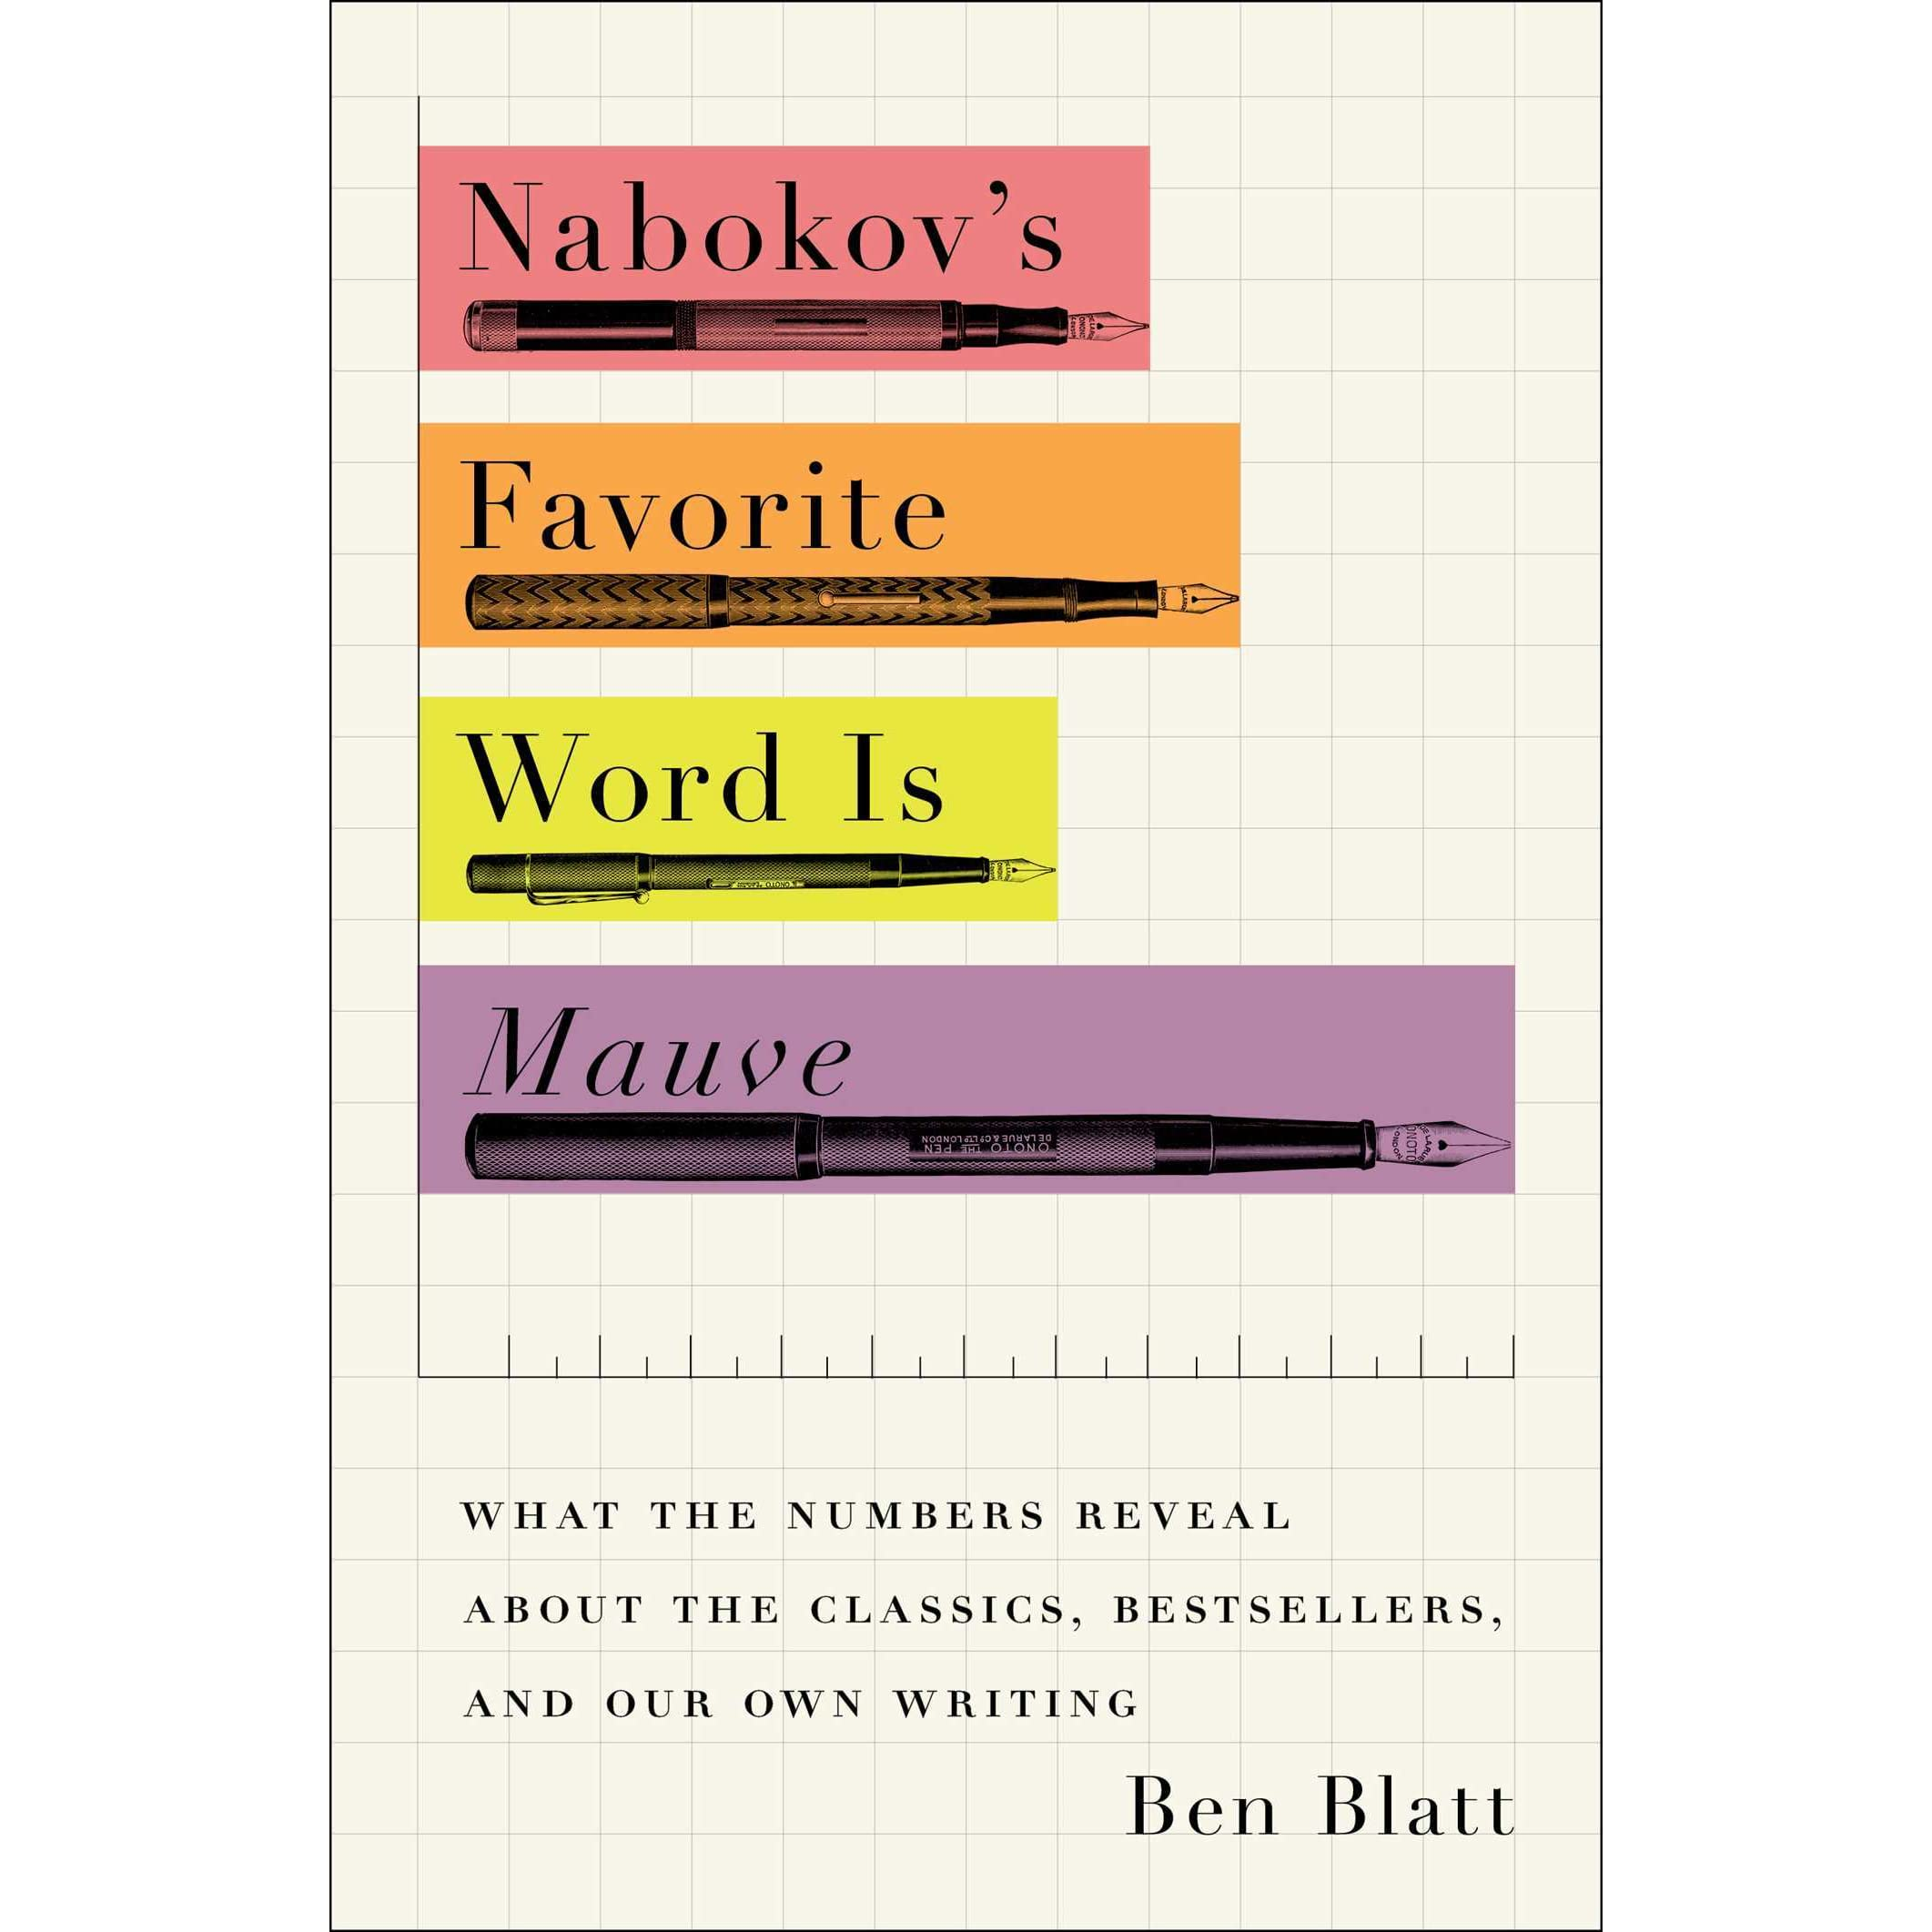 nabokov s favorite word is mauve what the numbers reveal about nabokov s favorite word is mauve what the numbers reveal about the classics bestsellers and our own writing by ben blatt reviews discussion